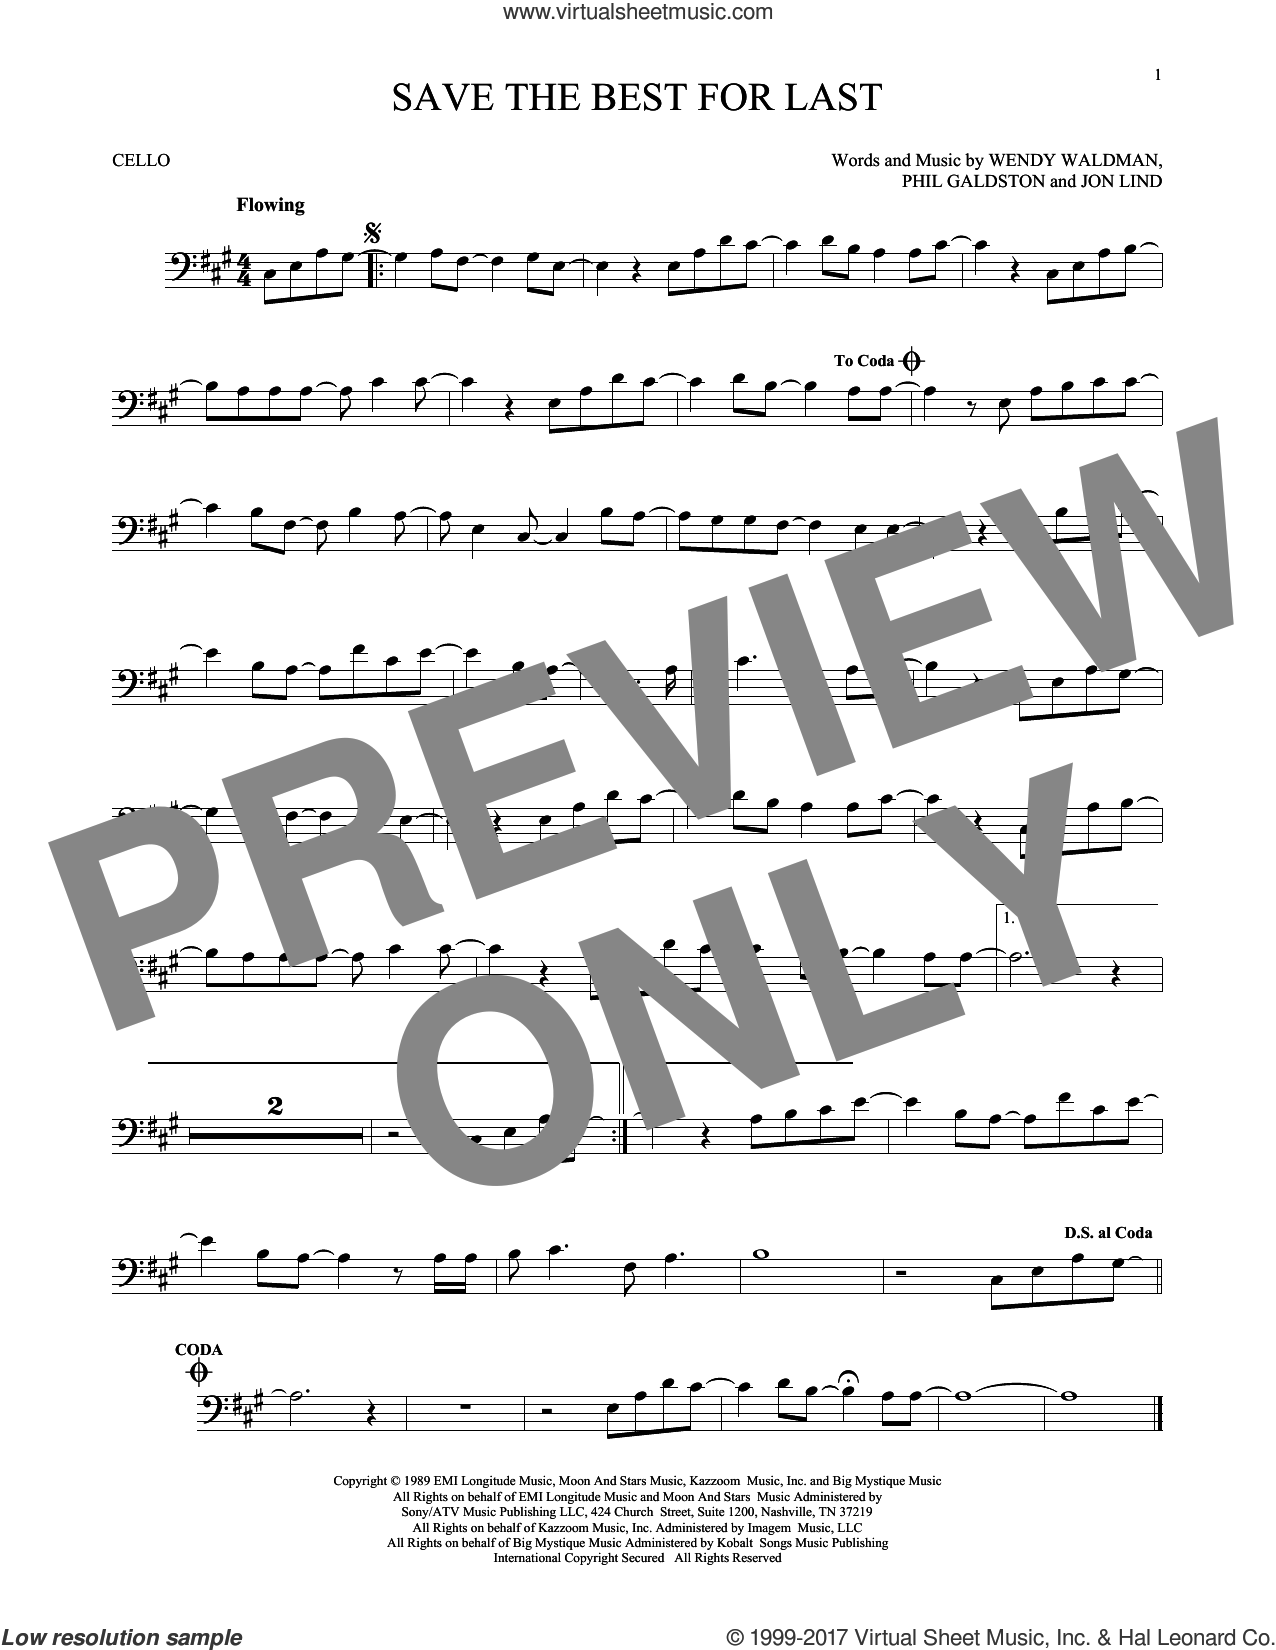 Save The Best For Last sheet music for cello solo by Vanessa Williams, Jon Lind and Wendy Waldman. Score Image Preview.